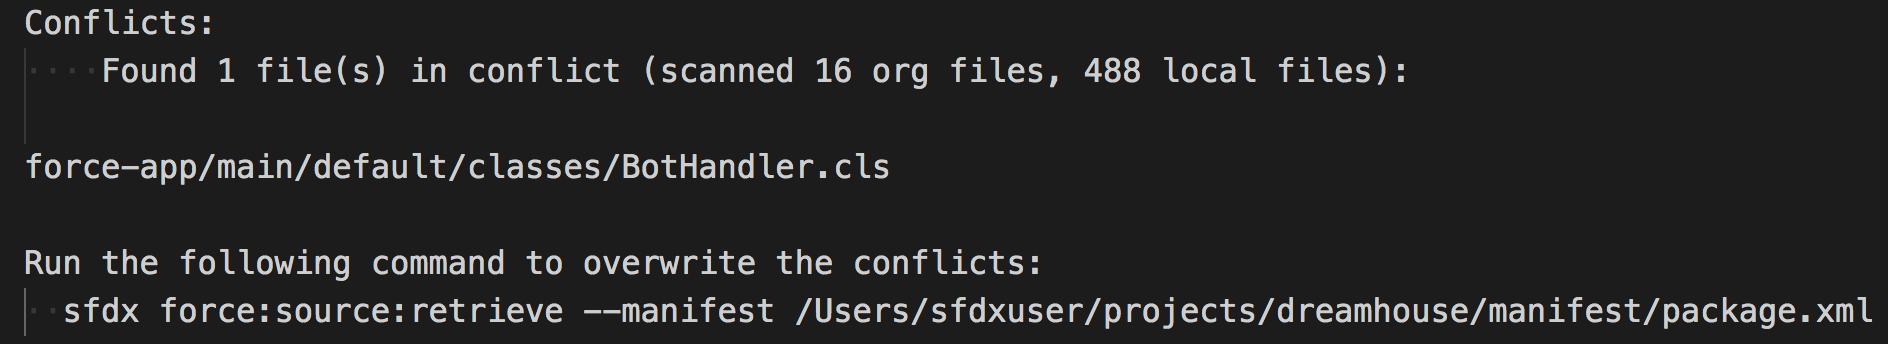 Output panel showing conflicts and CLI command